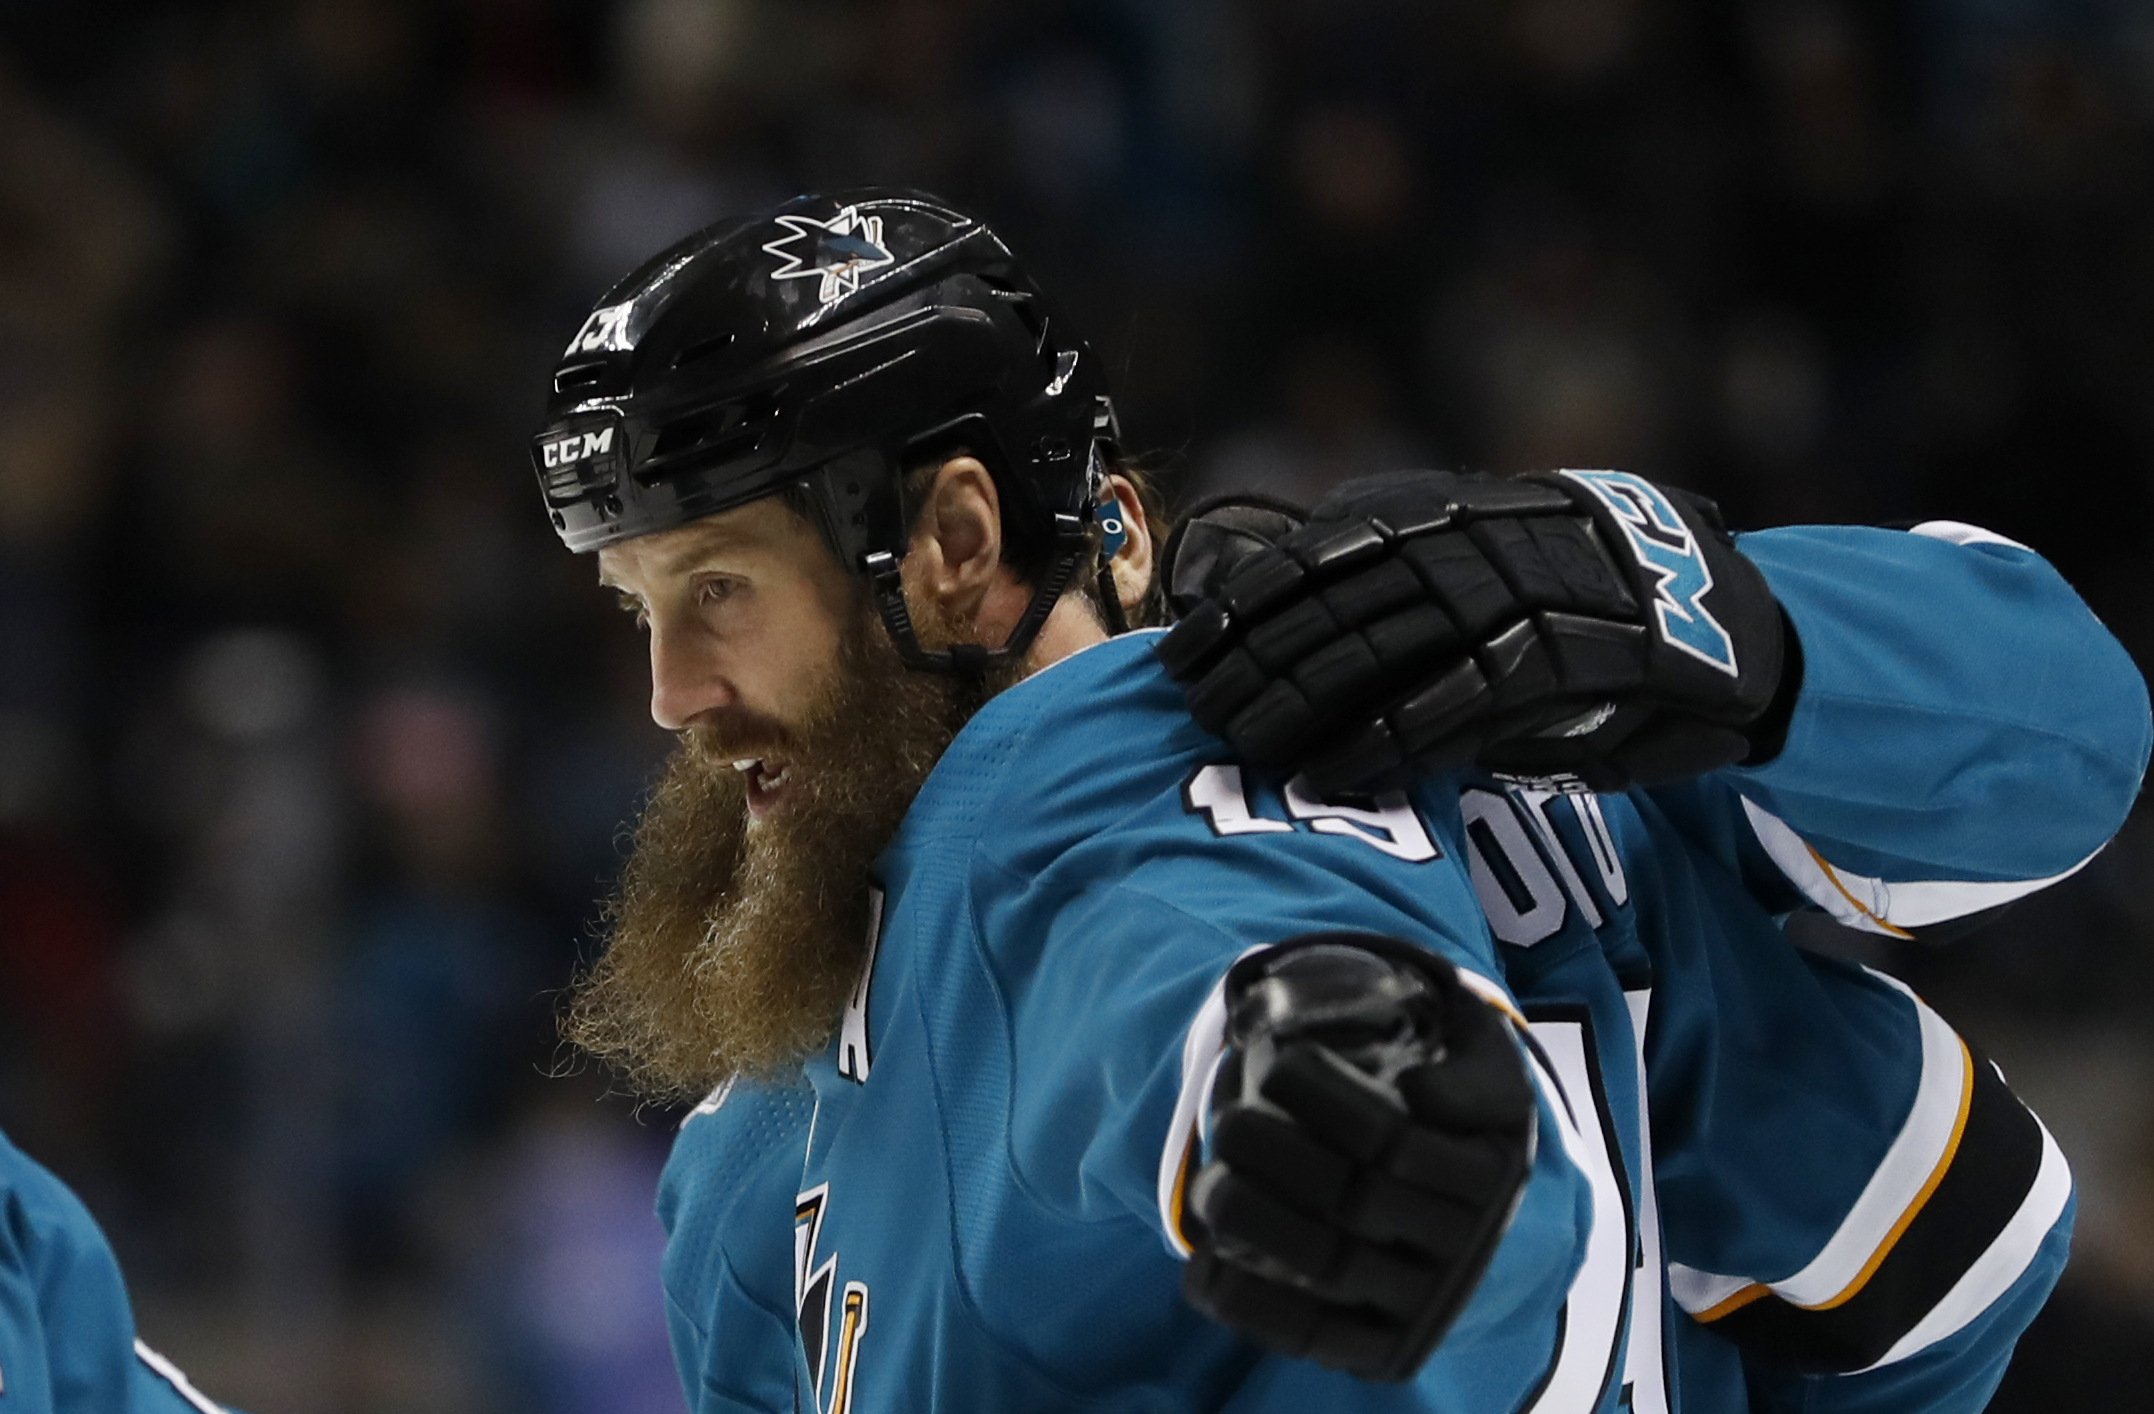 Sharks F Joe Thornton out for several weeks with knee injury